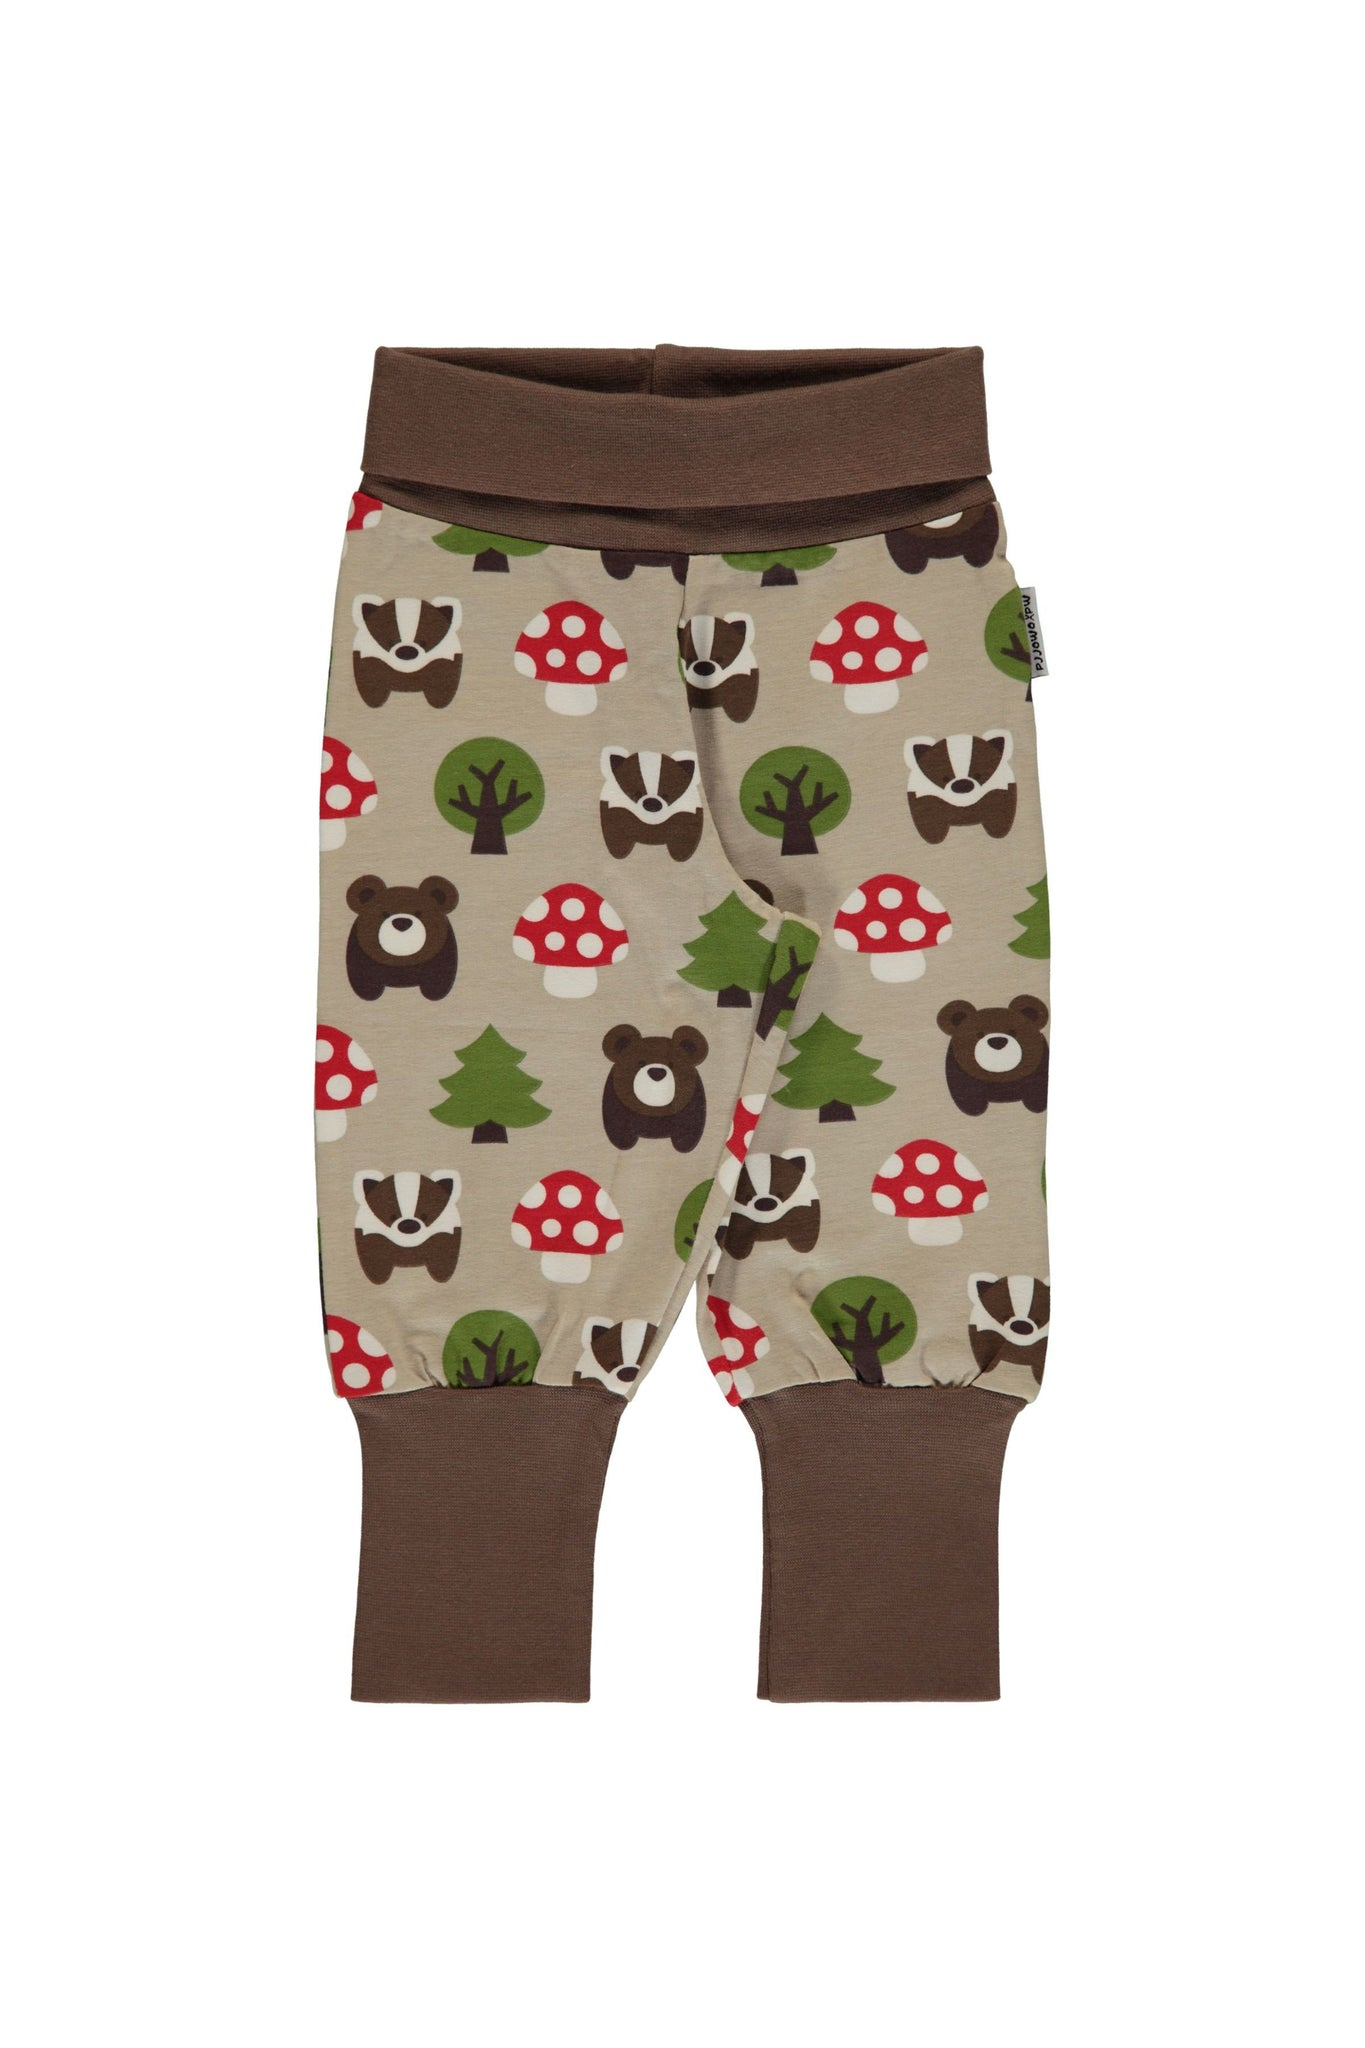 Forest - Rib - Pants - Maxomorra Fashion - Snugglefox